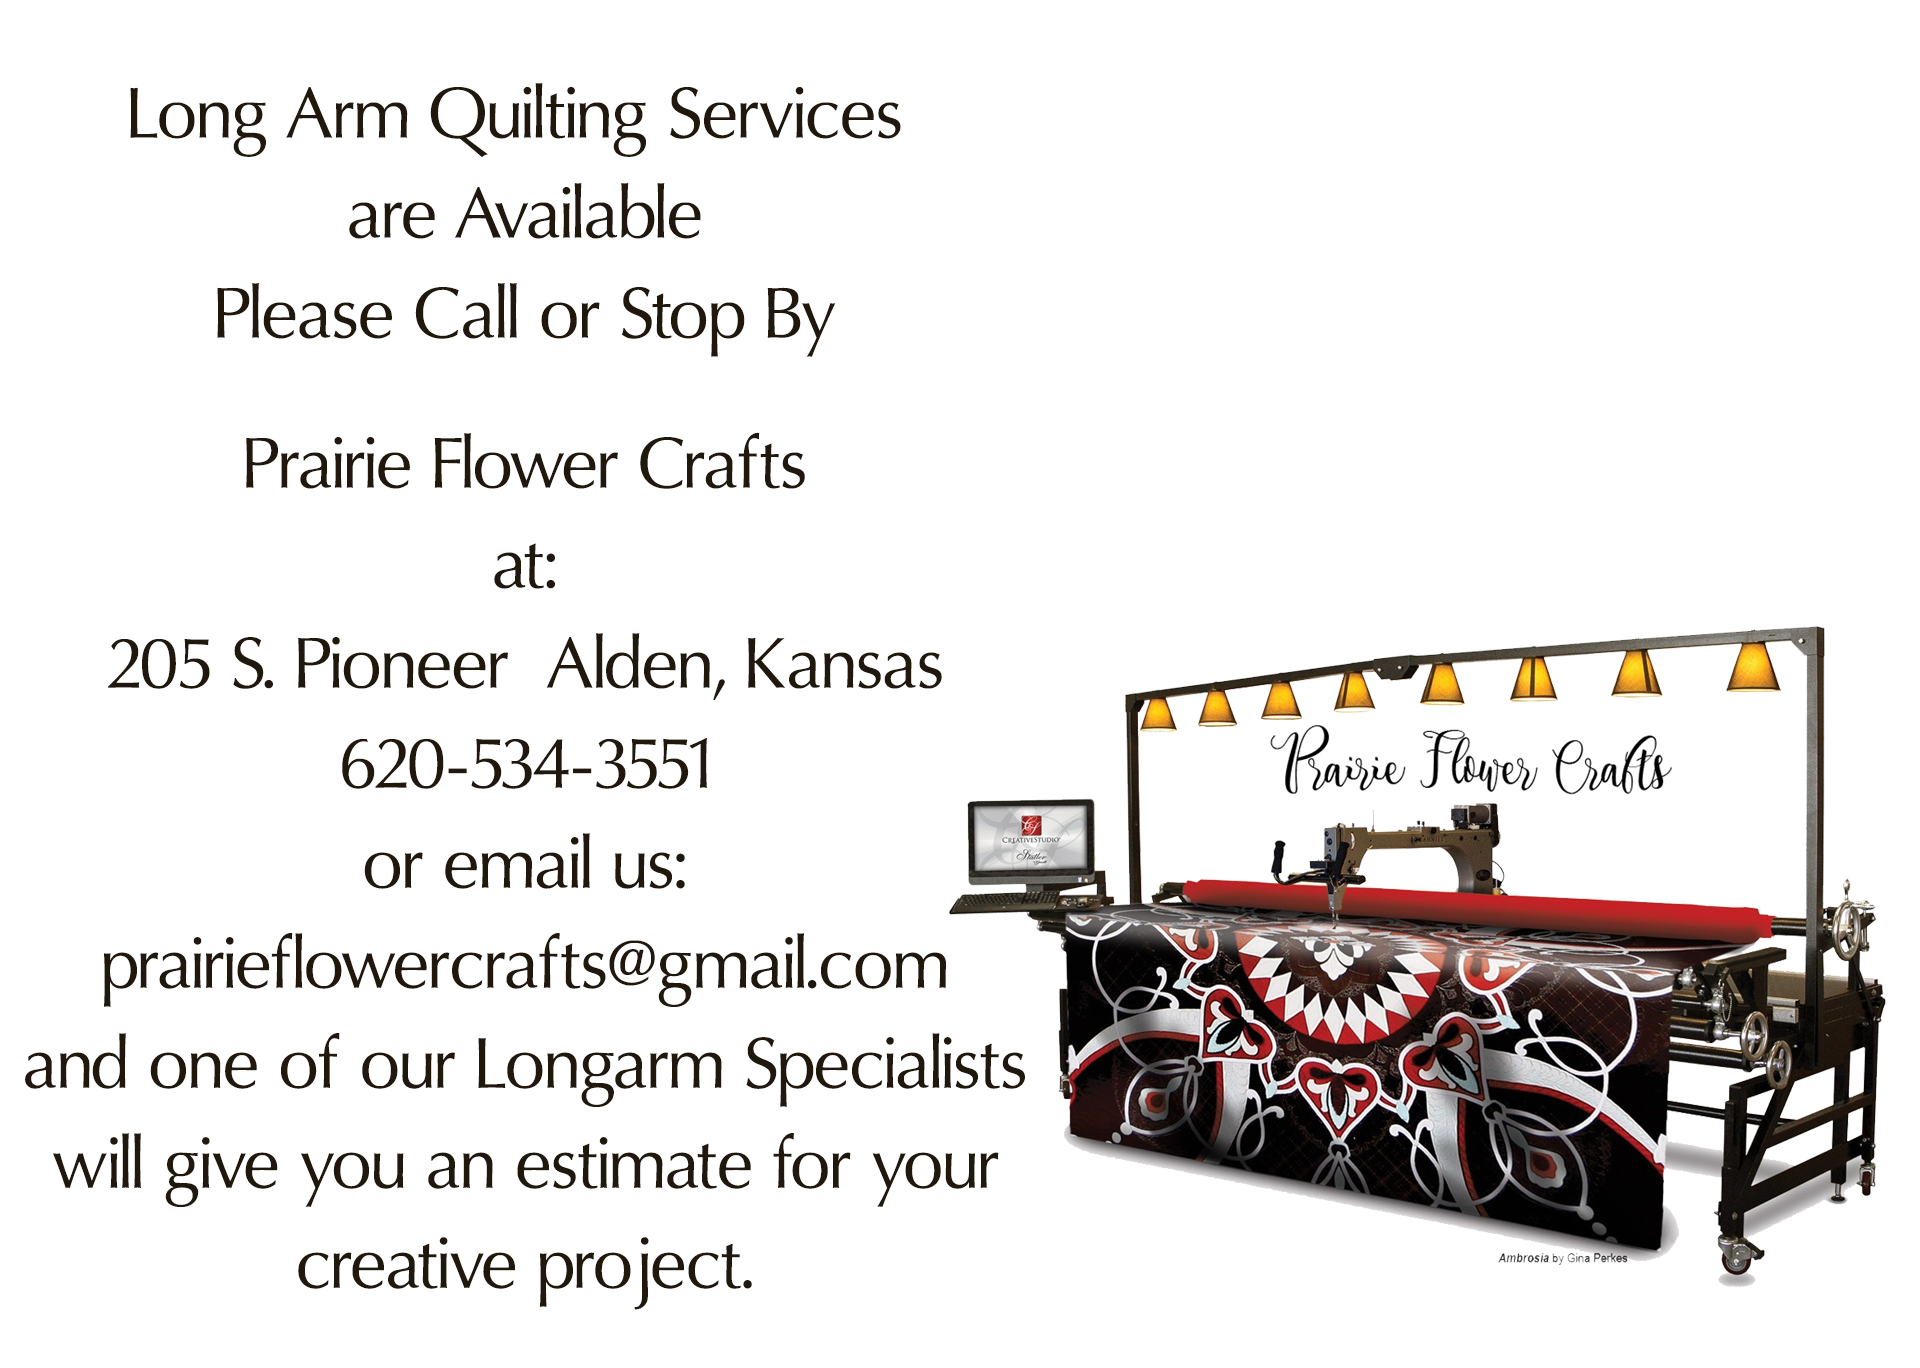 Long Arm Quilting Services Available